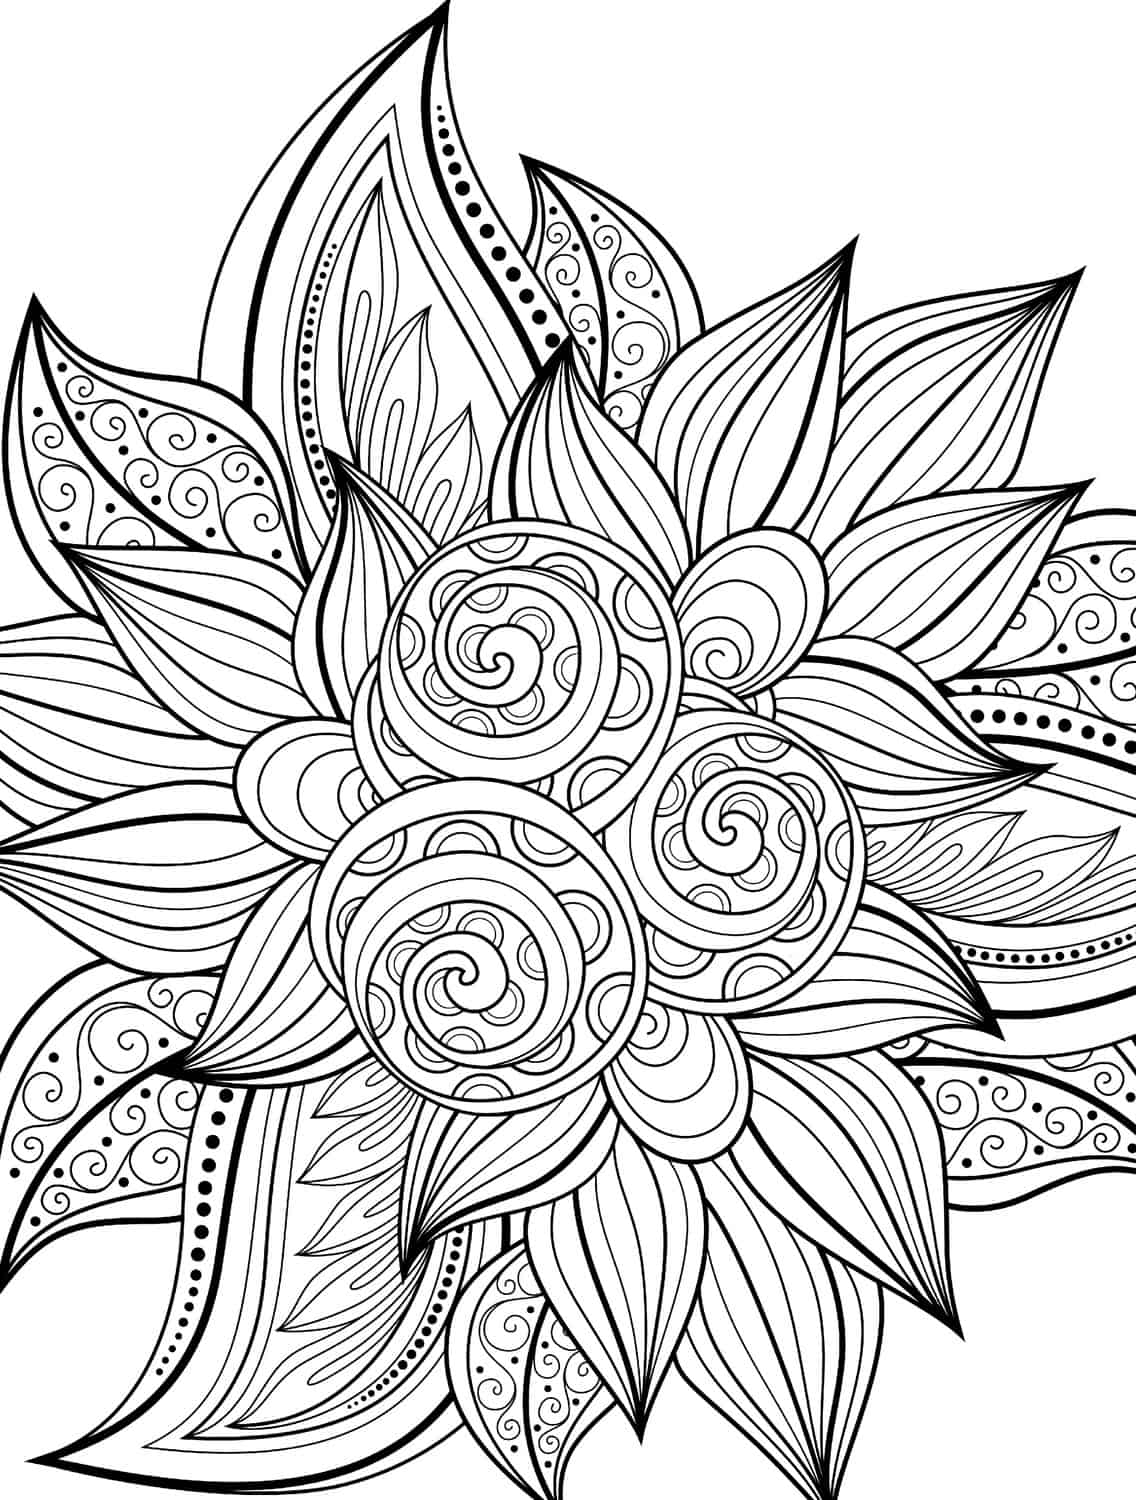 Free printable coloring pages adults resume format Coloring book for adults free download